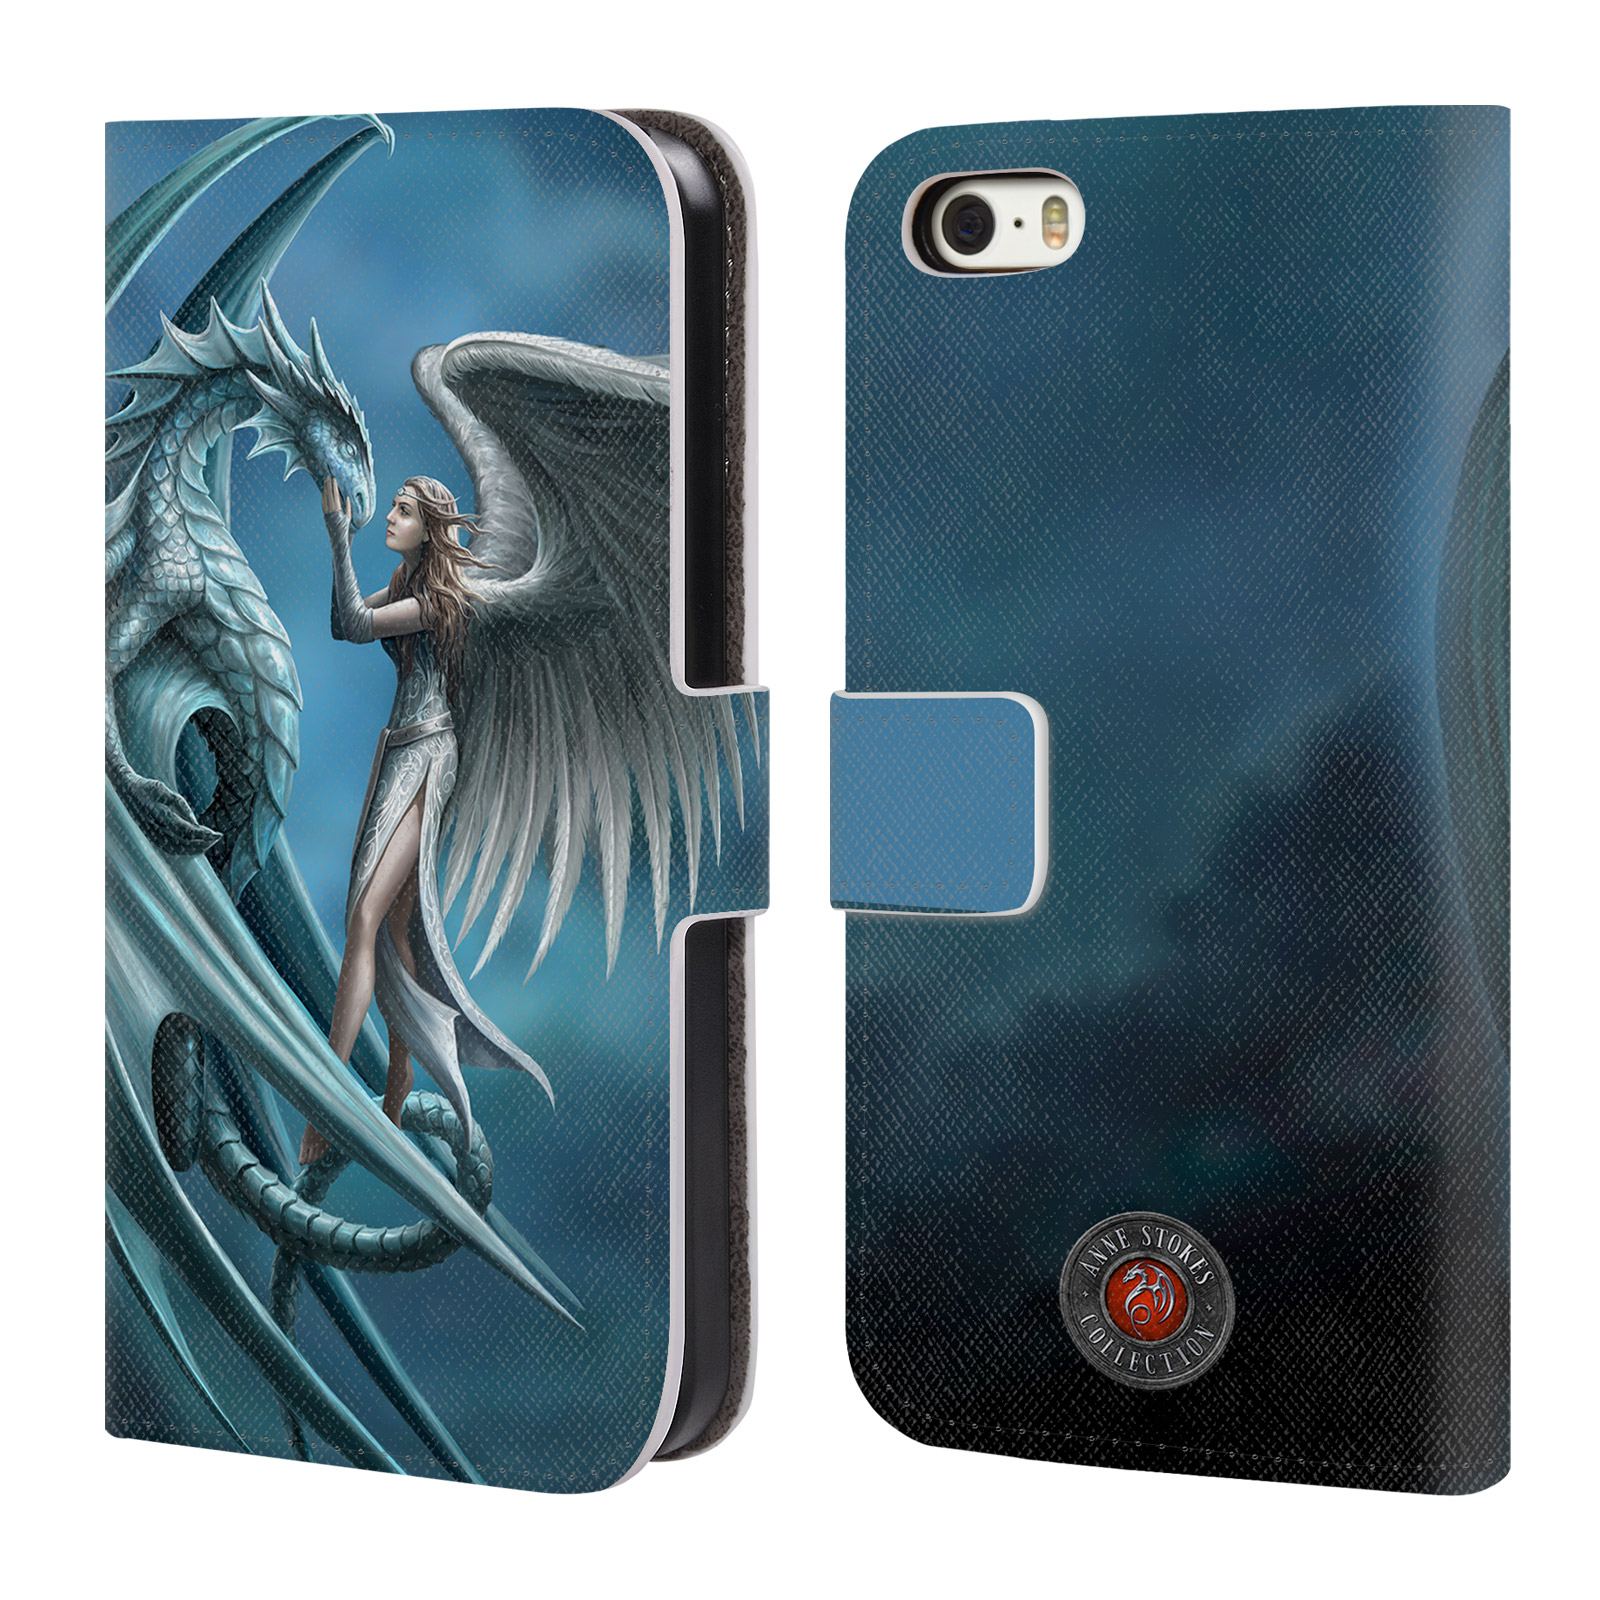 OFFICIAL ANNE STOKES DRAGON FRIENDSHIP LEATHER BOOK WALLET CASE COVER FOR APPLE IPHONE PHONES